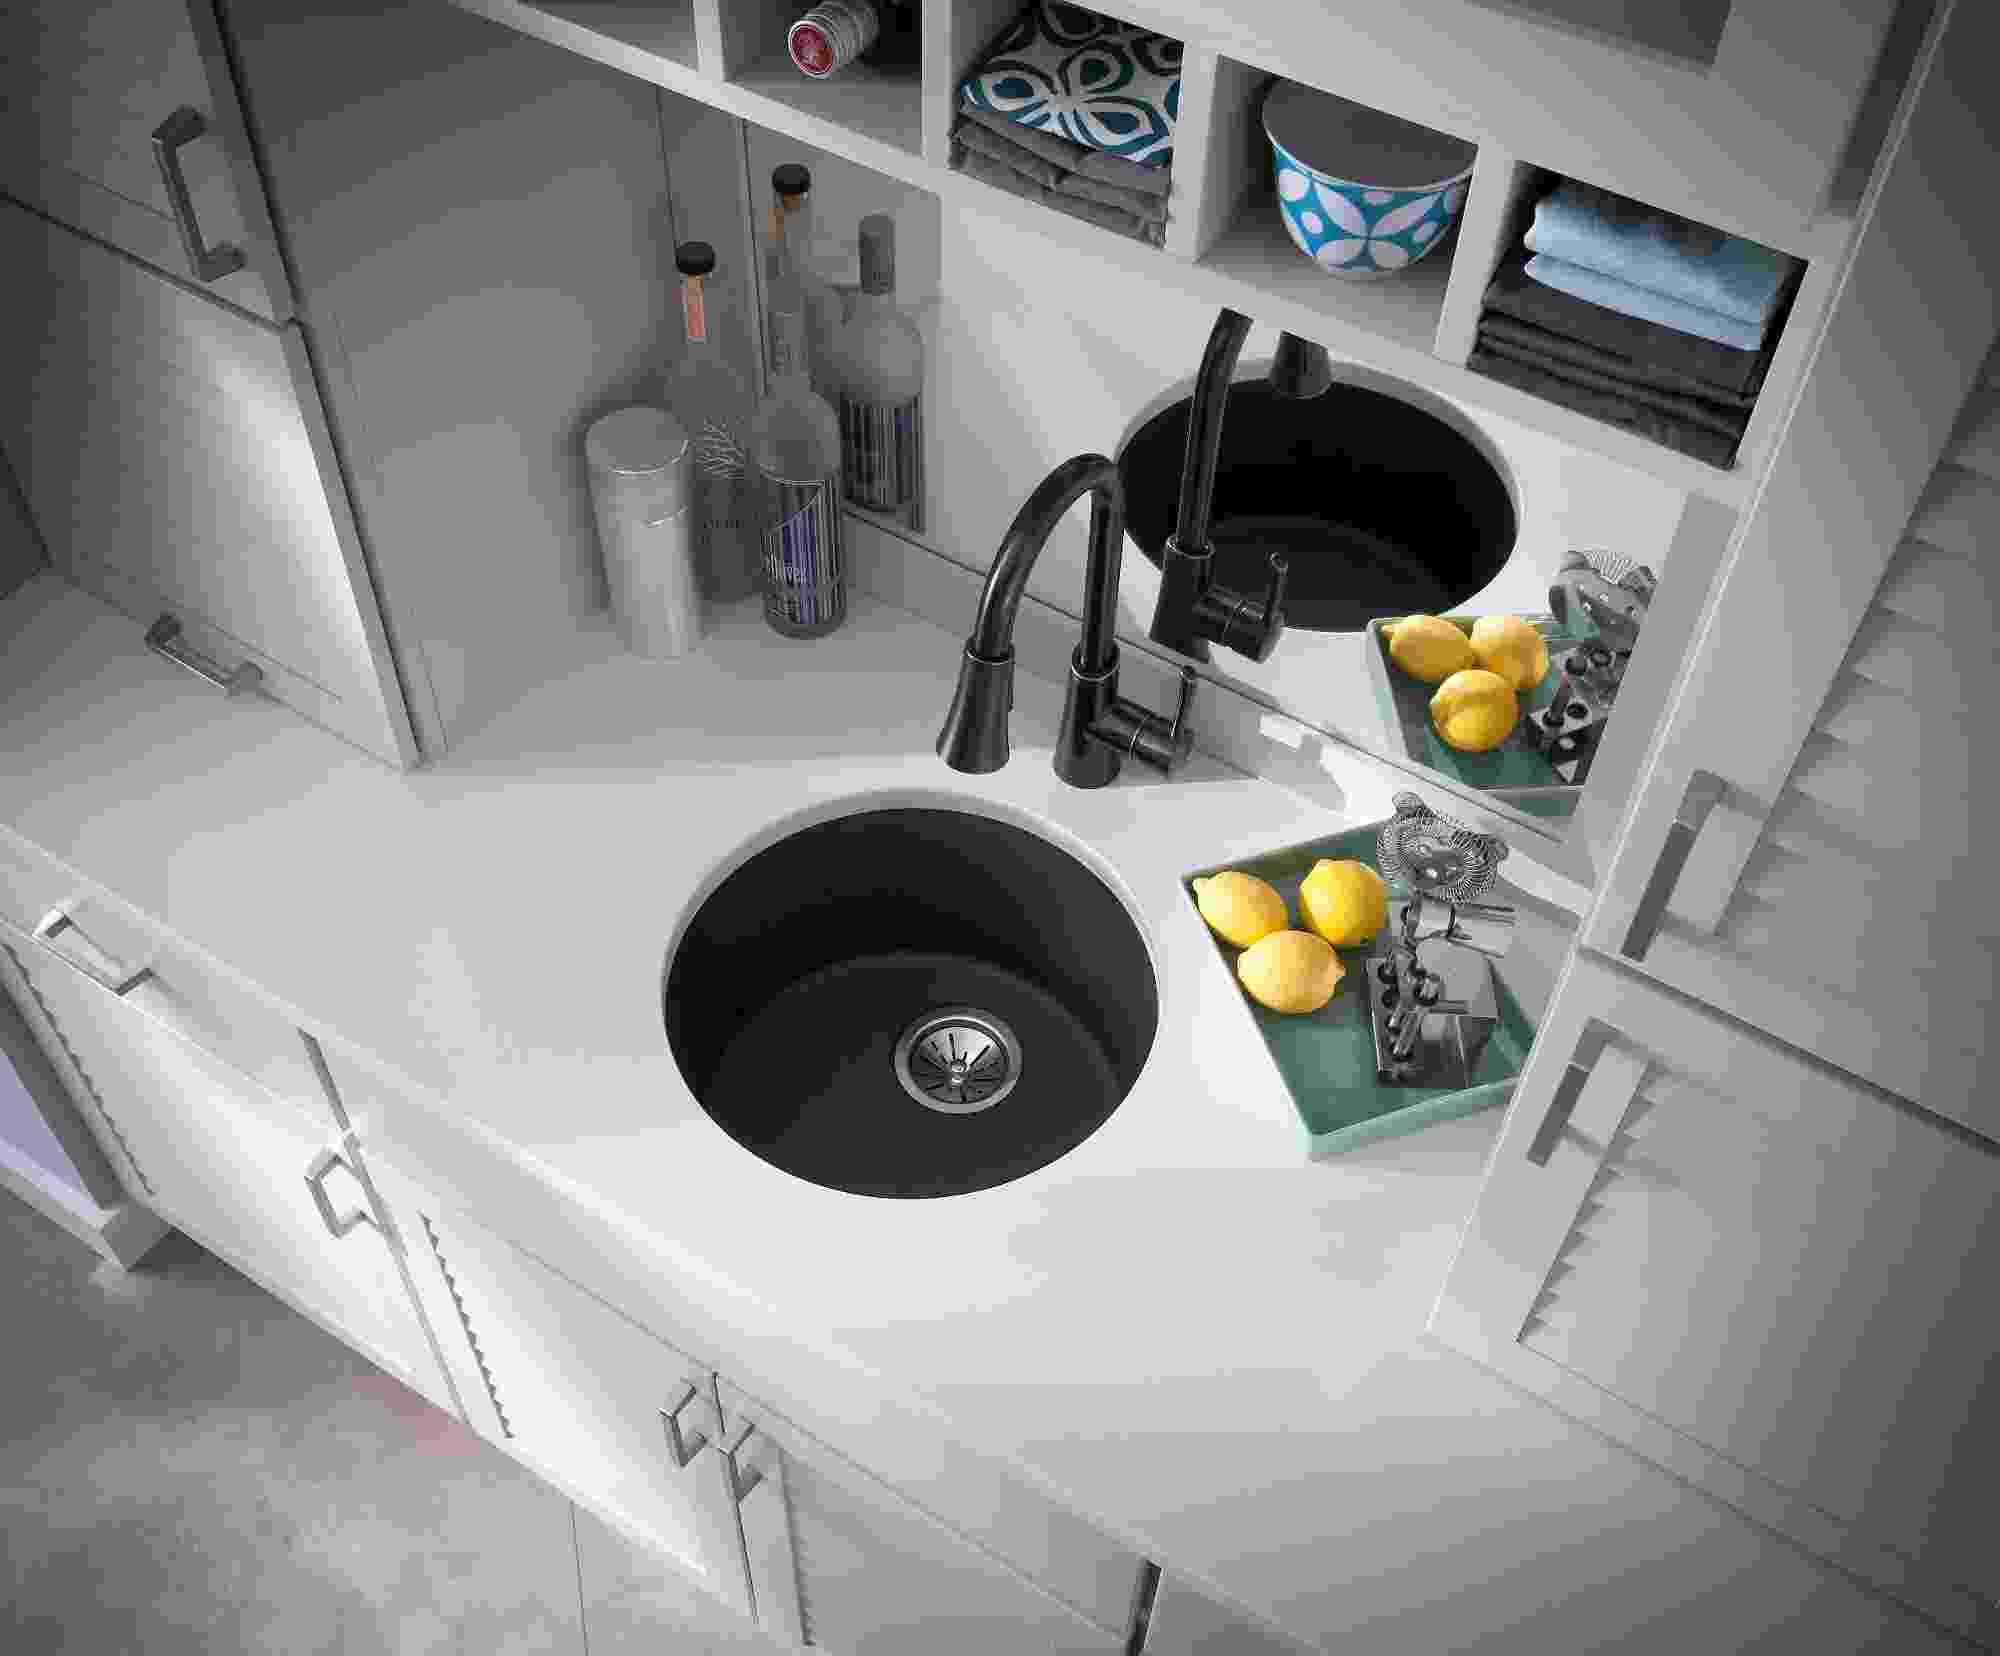 Elkay Quartz Classic 18-1/8in x 18-1/8in x 7-1/2in Single Bowl Dual Mount Bar Sink Greige